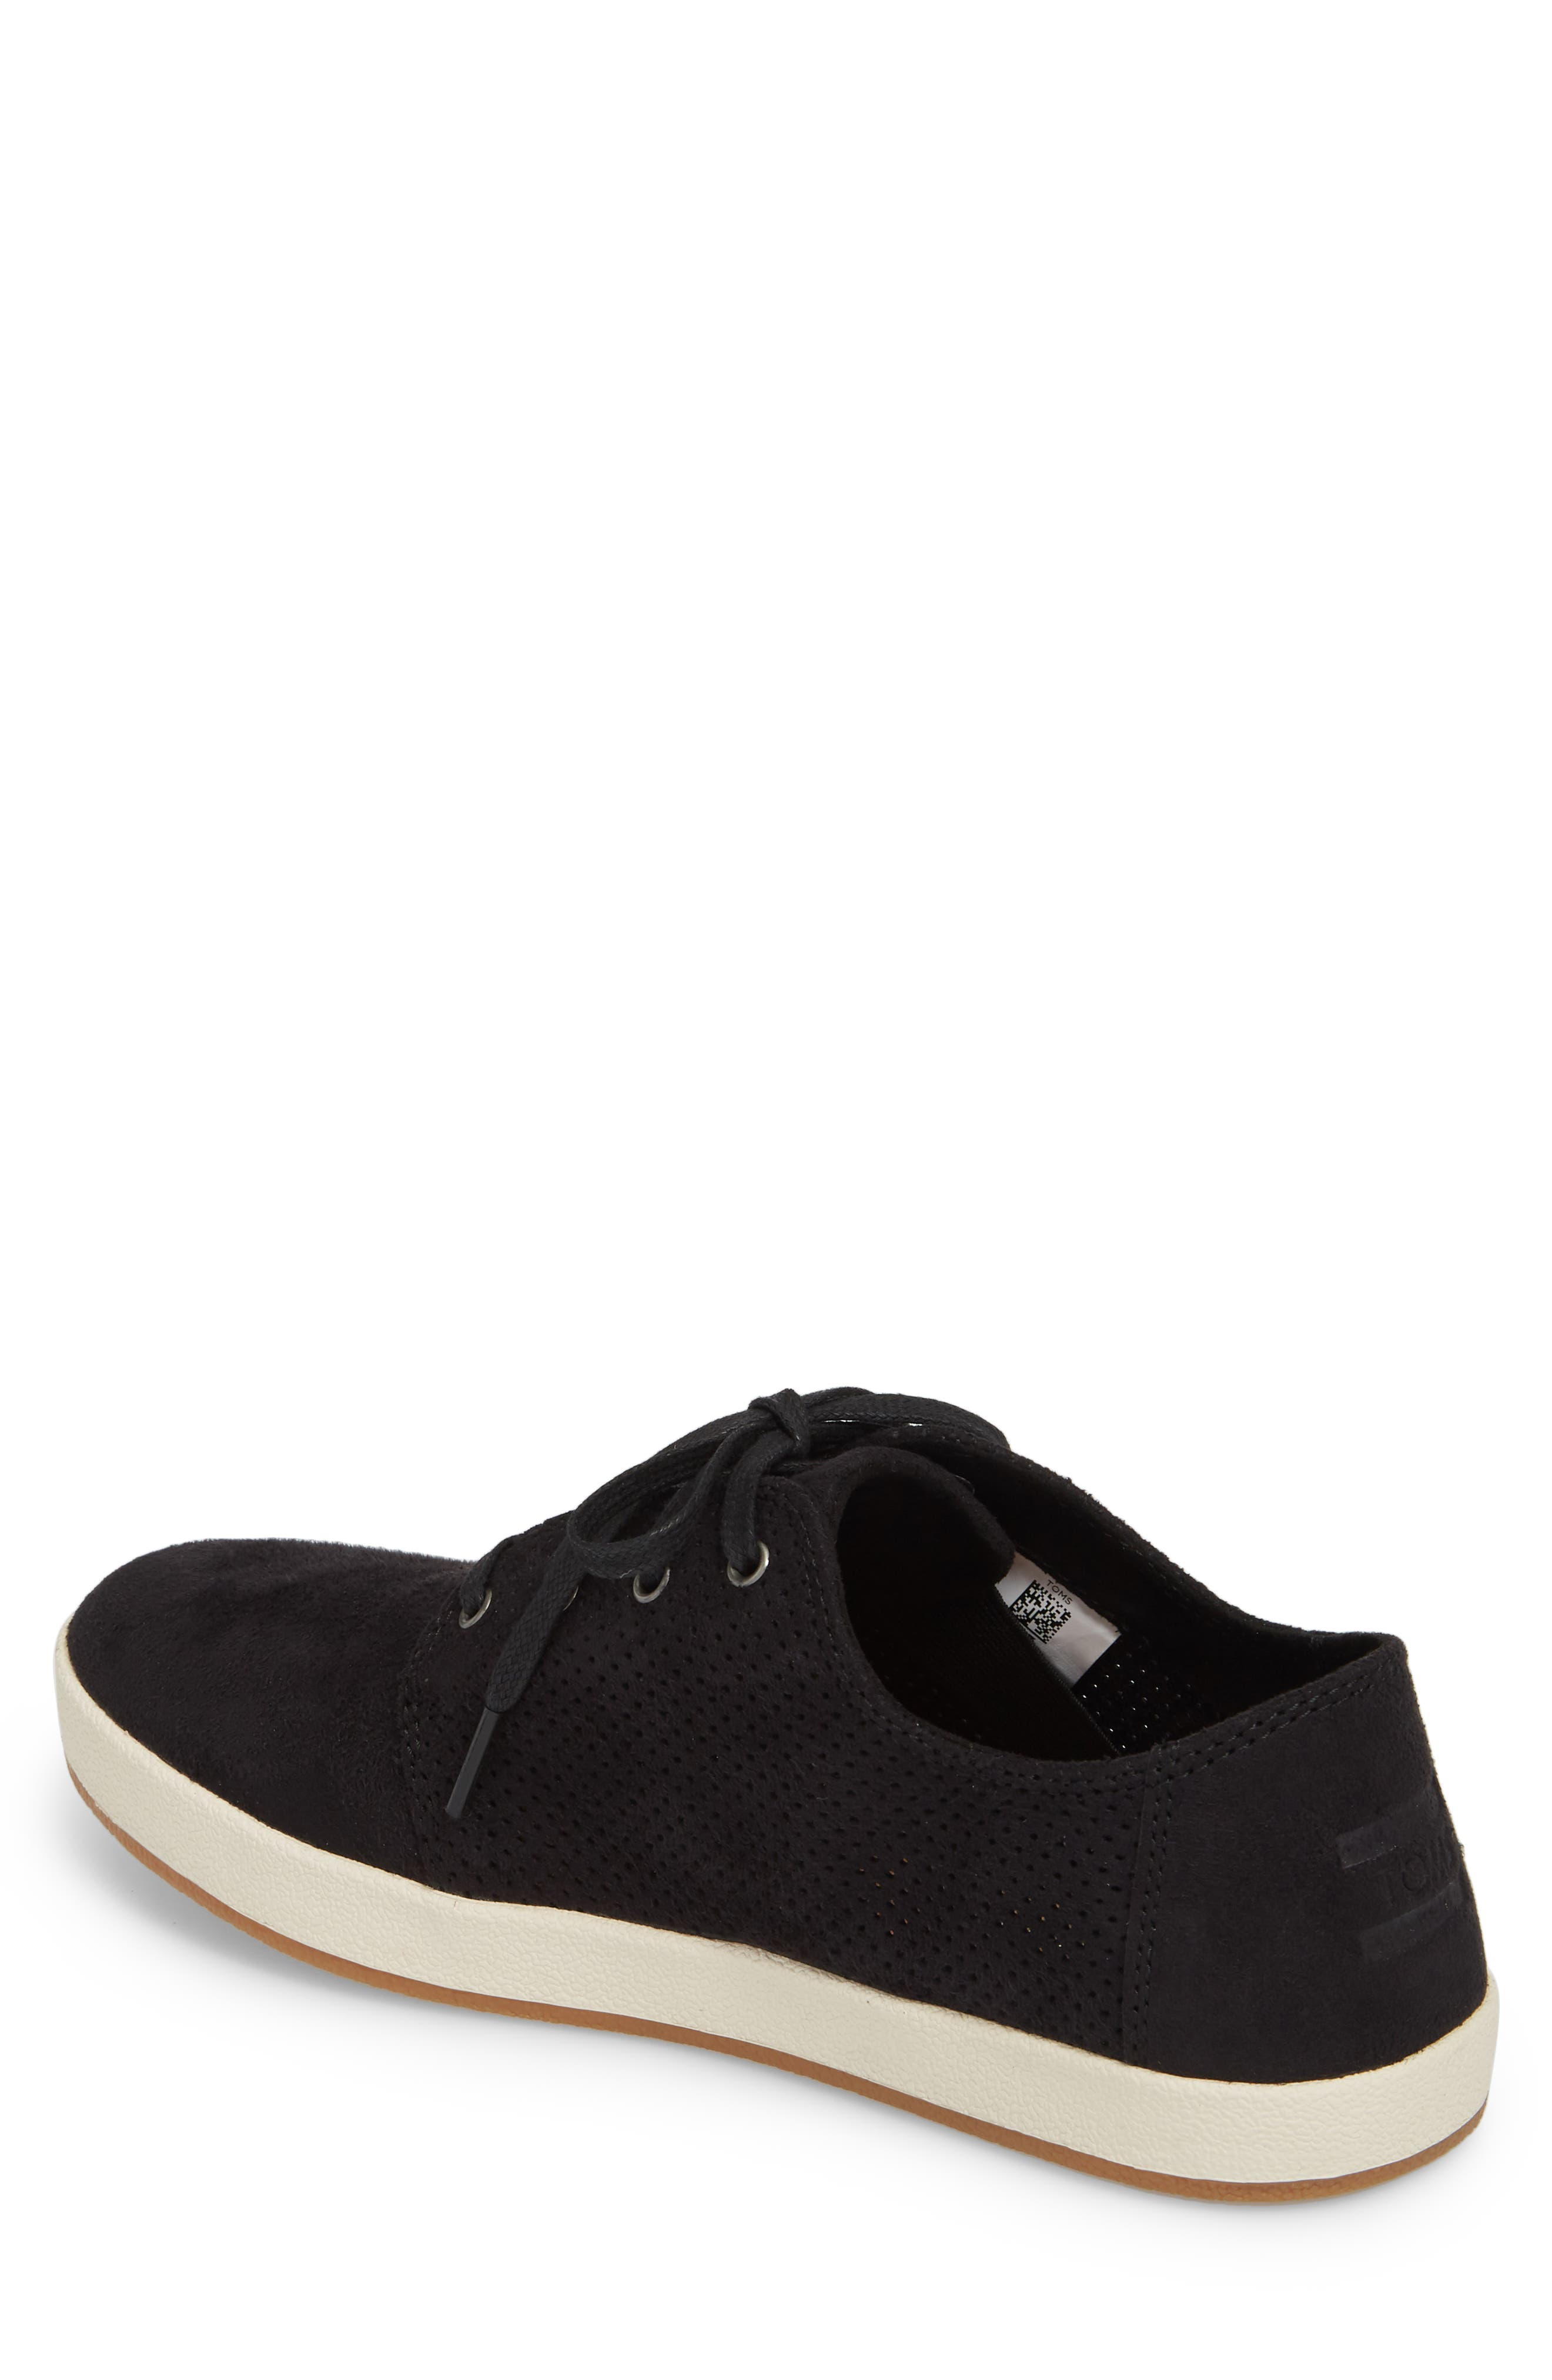 TOMS,                             Payton Perforated Sneaker,                             Alternate thumbnail 2, color,                             001